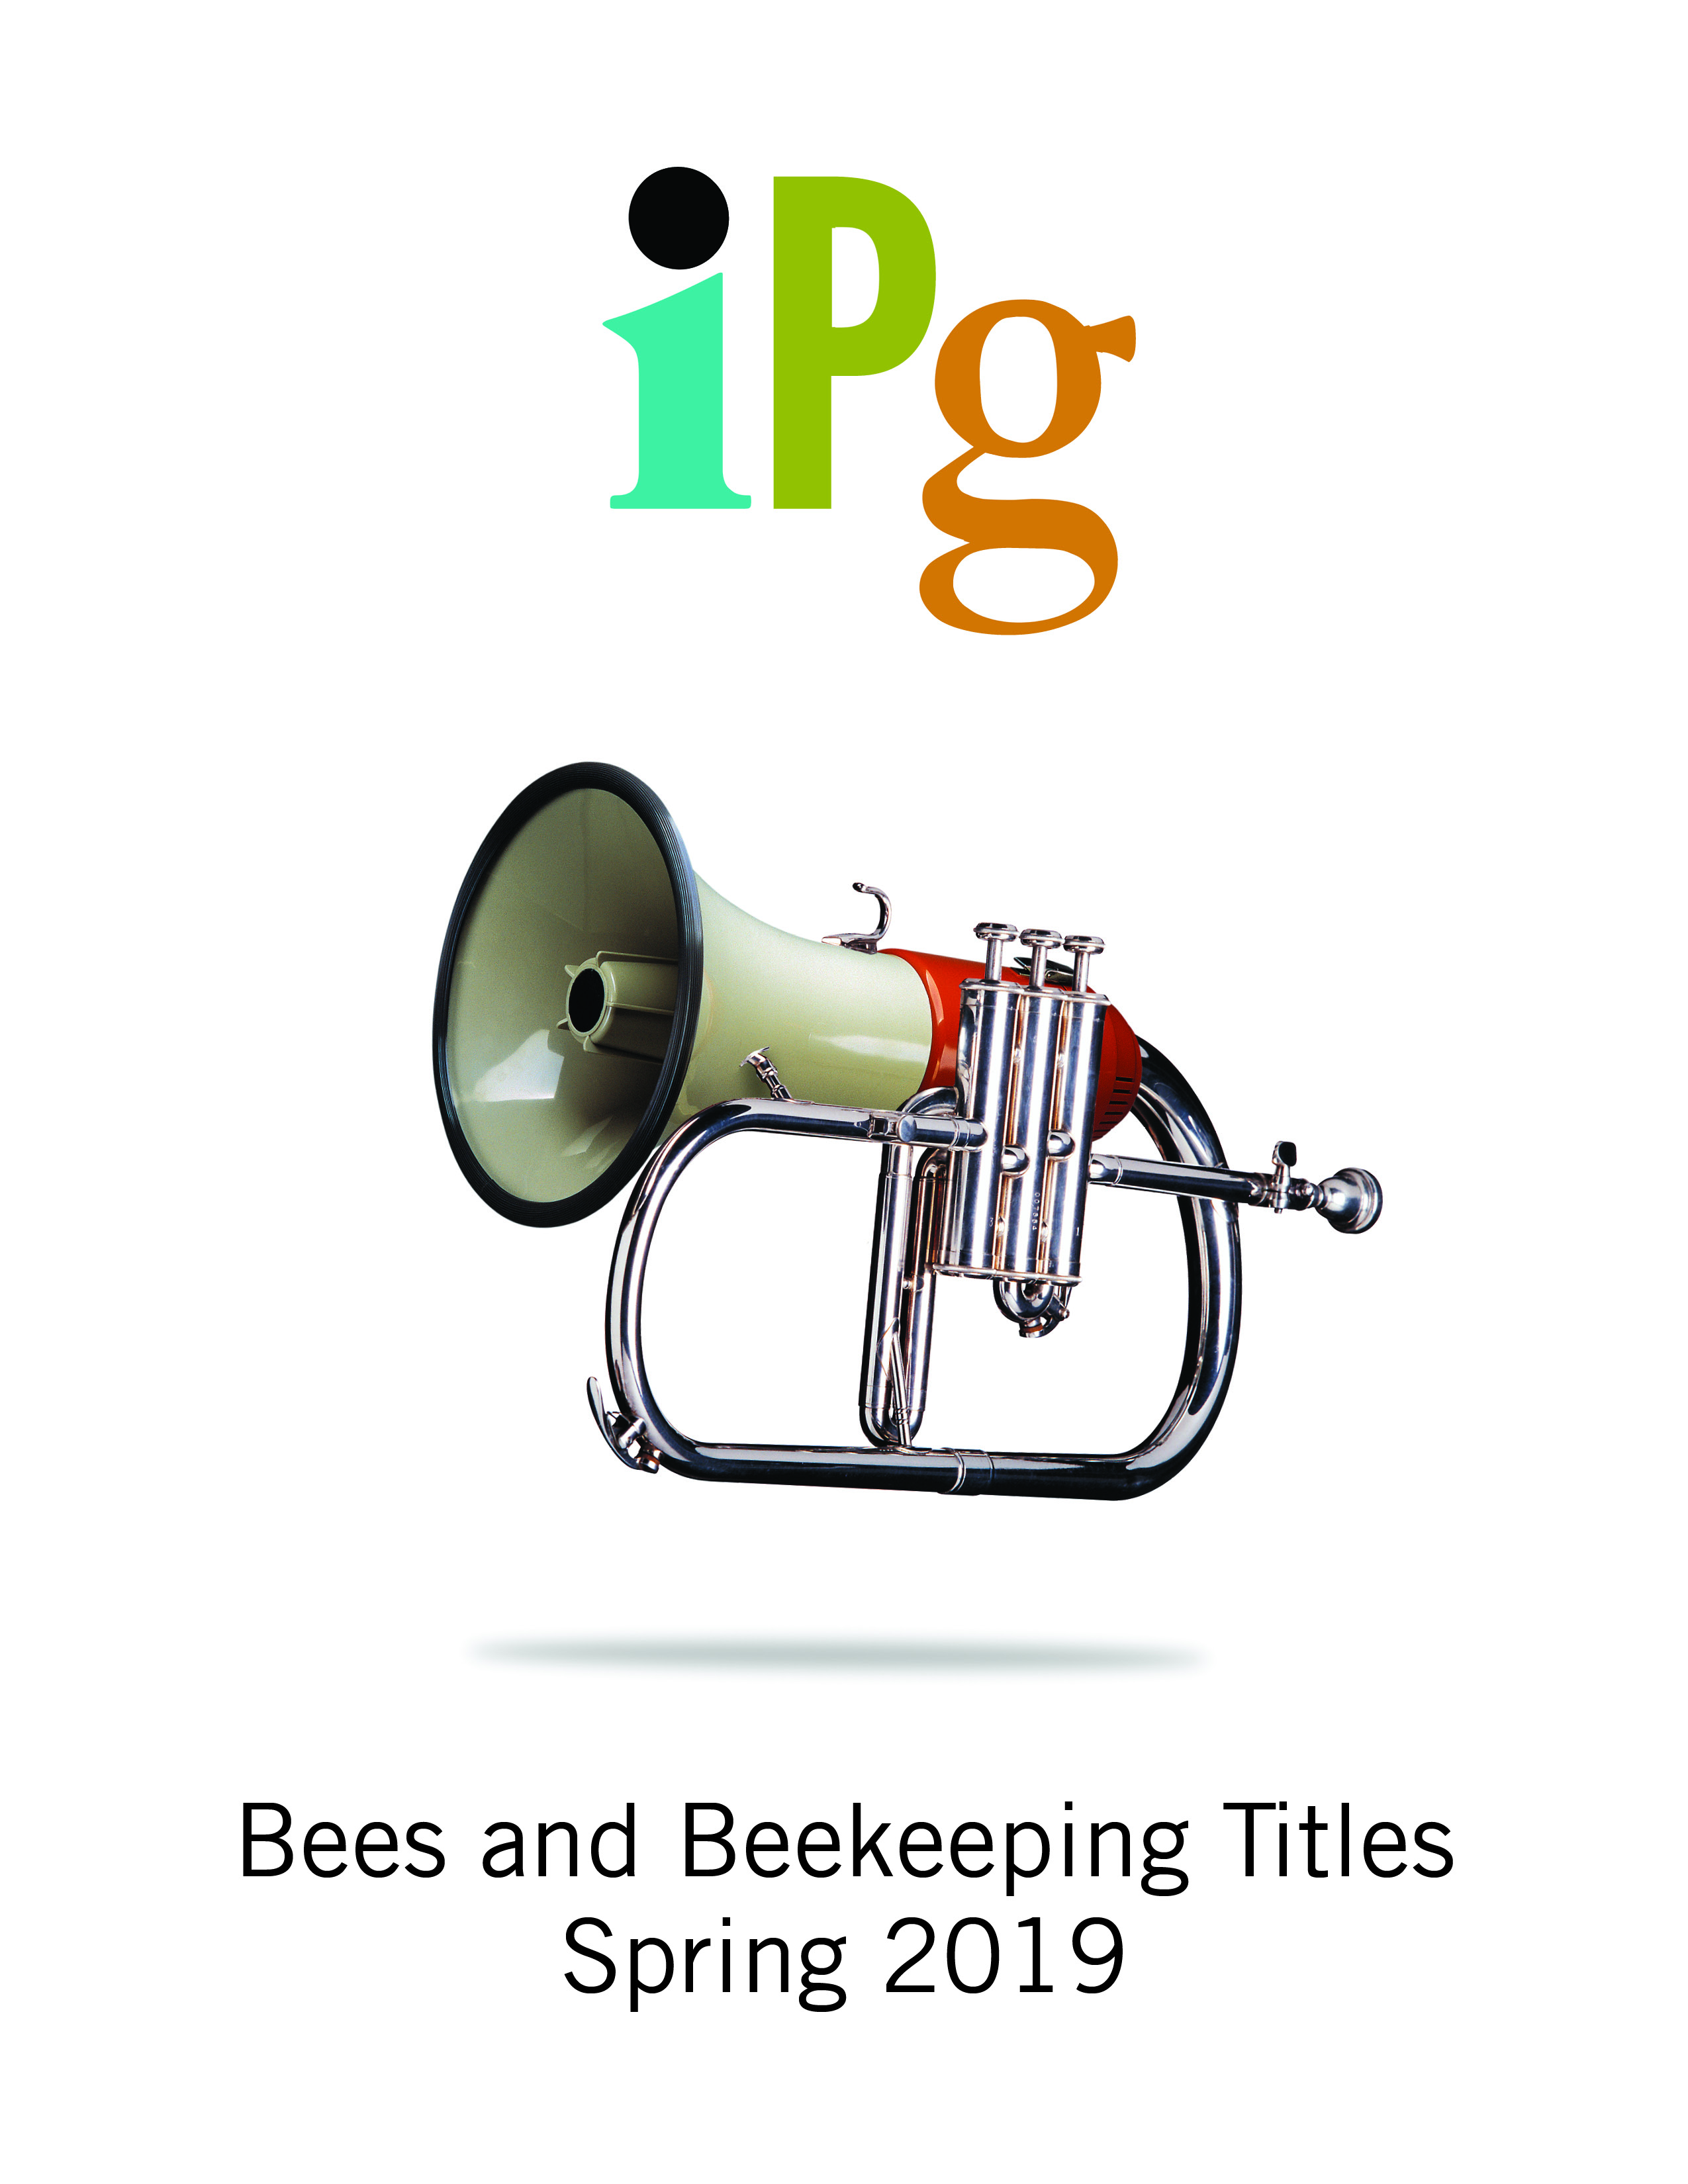 Bees & Beekeeping Titles